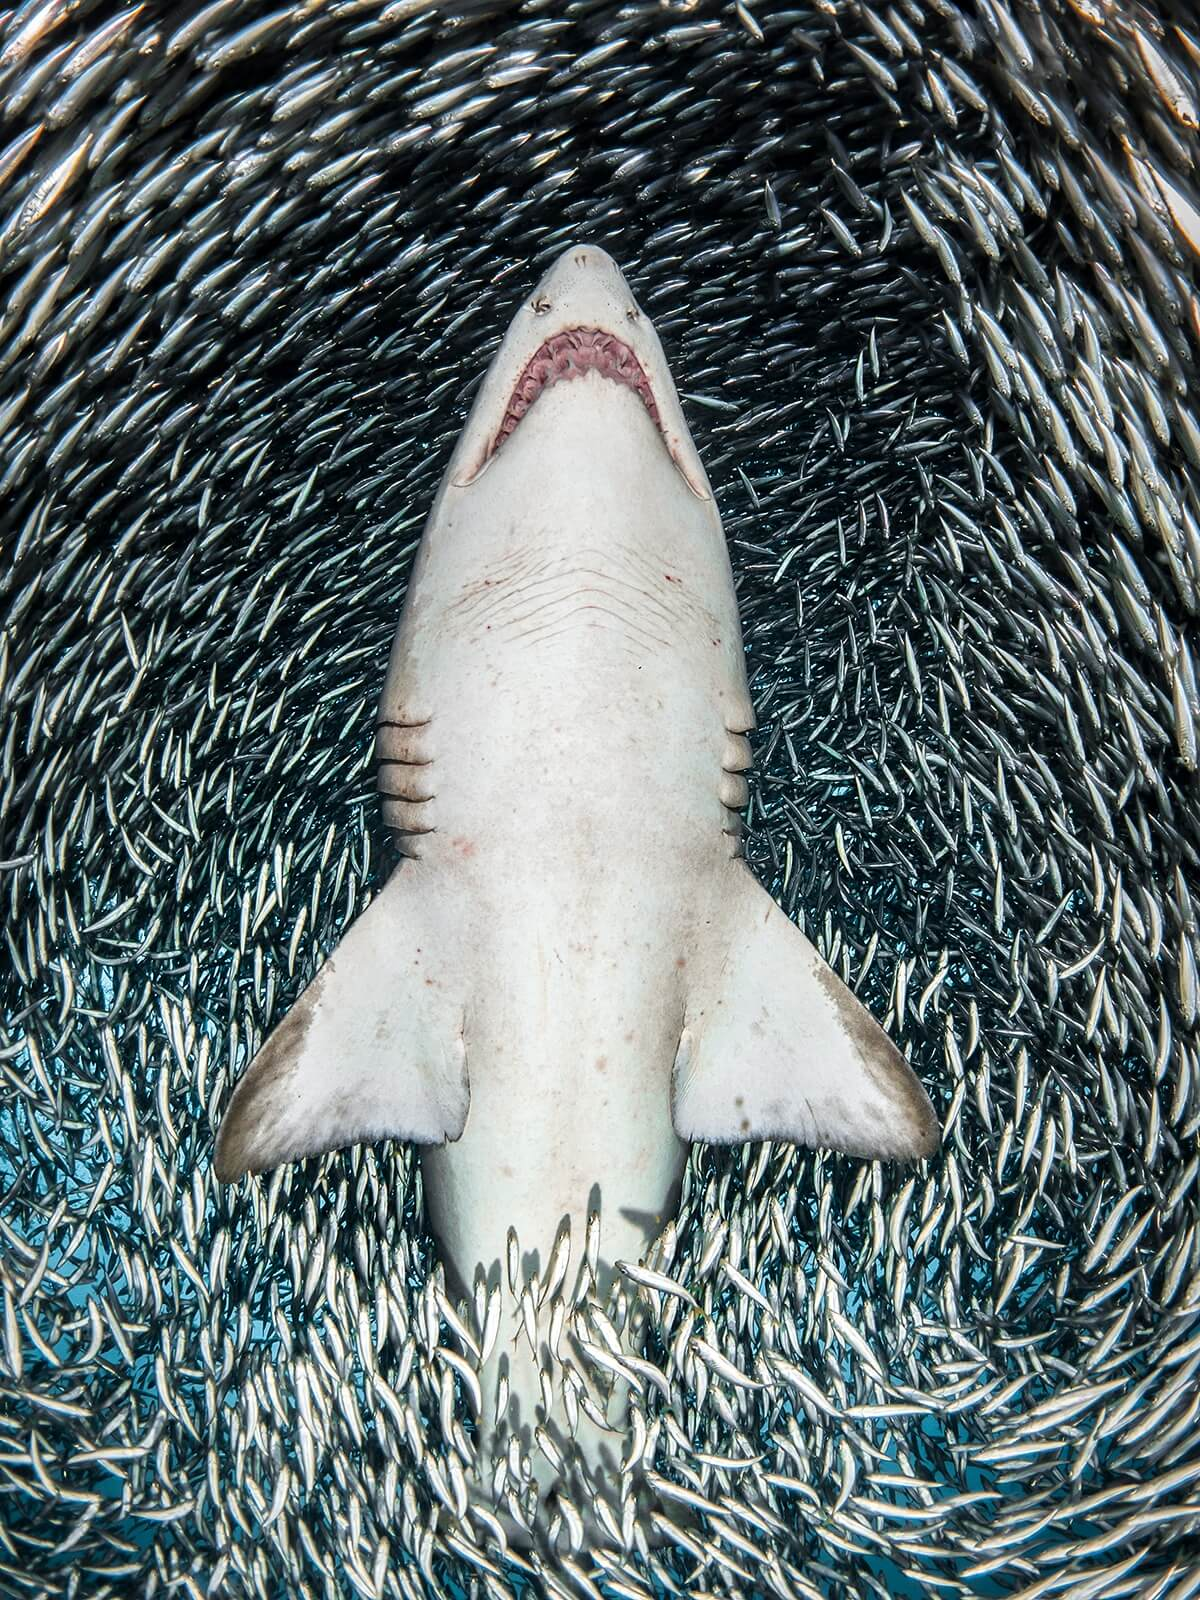 Winners of the 2018 Underwater Photographer of the Year awards 11 (1)